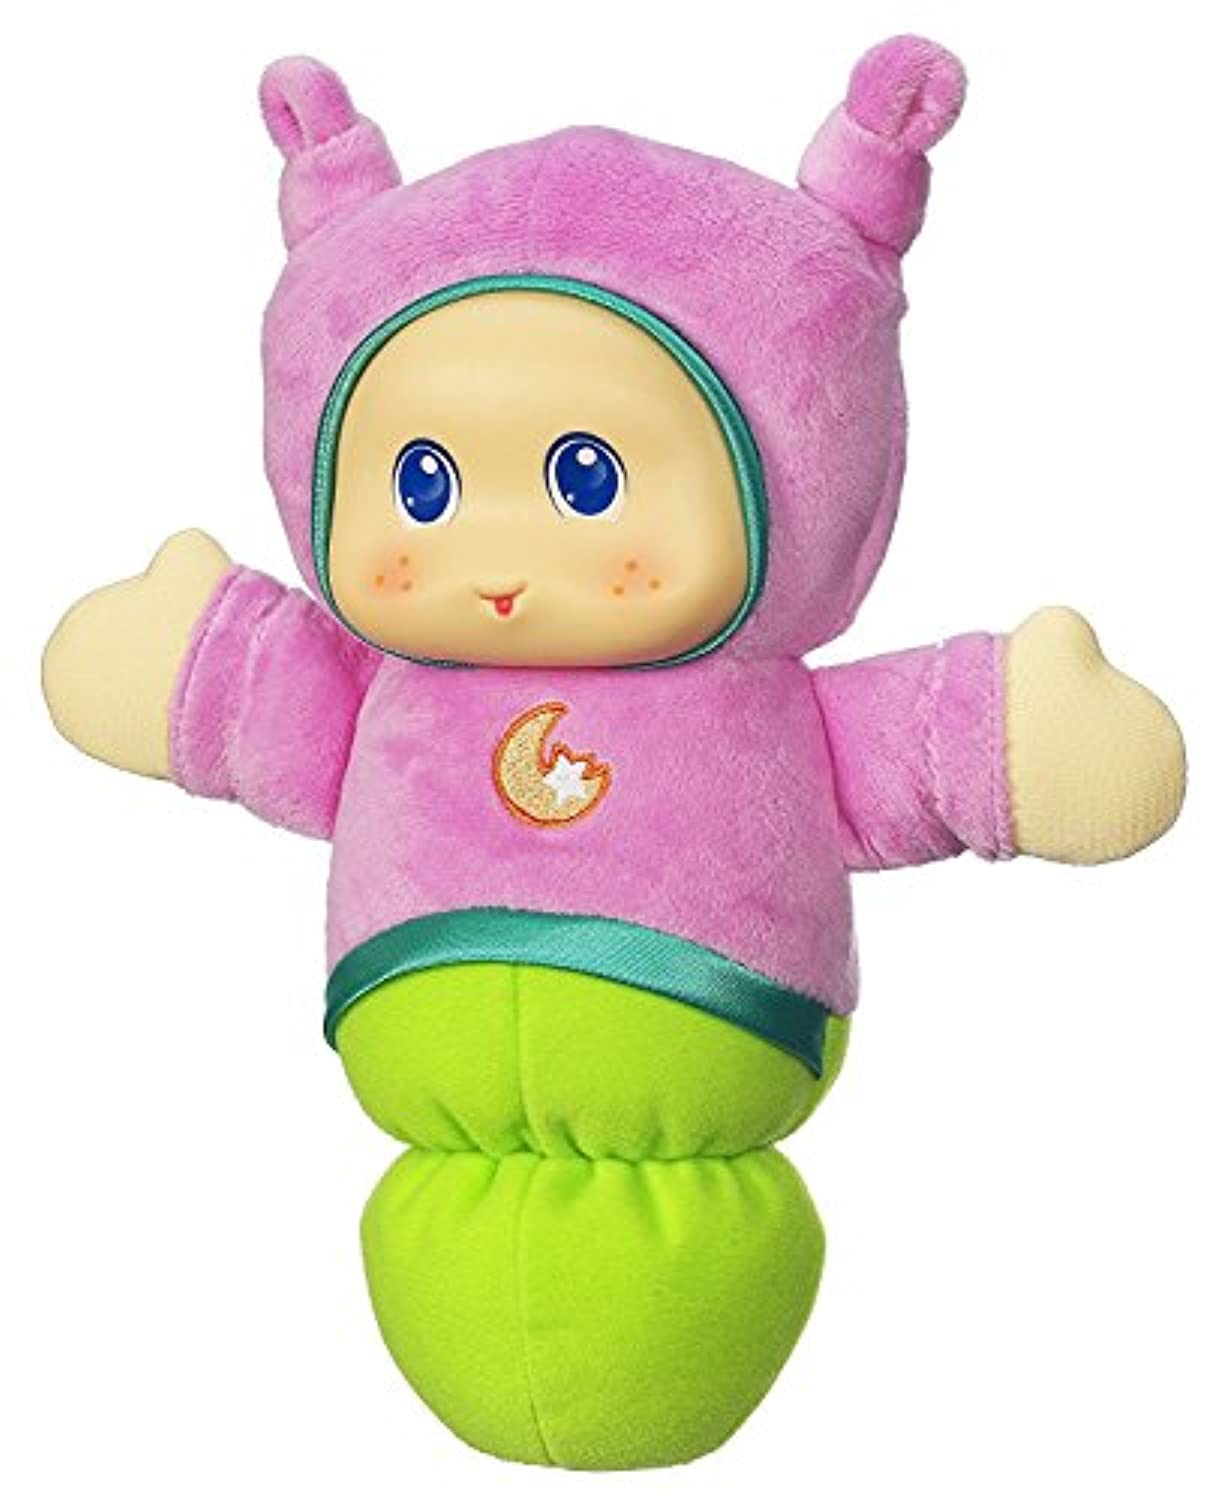 Hasbro Playskool Lullaby Gloworm Girl Pink/Green [並行輸入品]